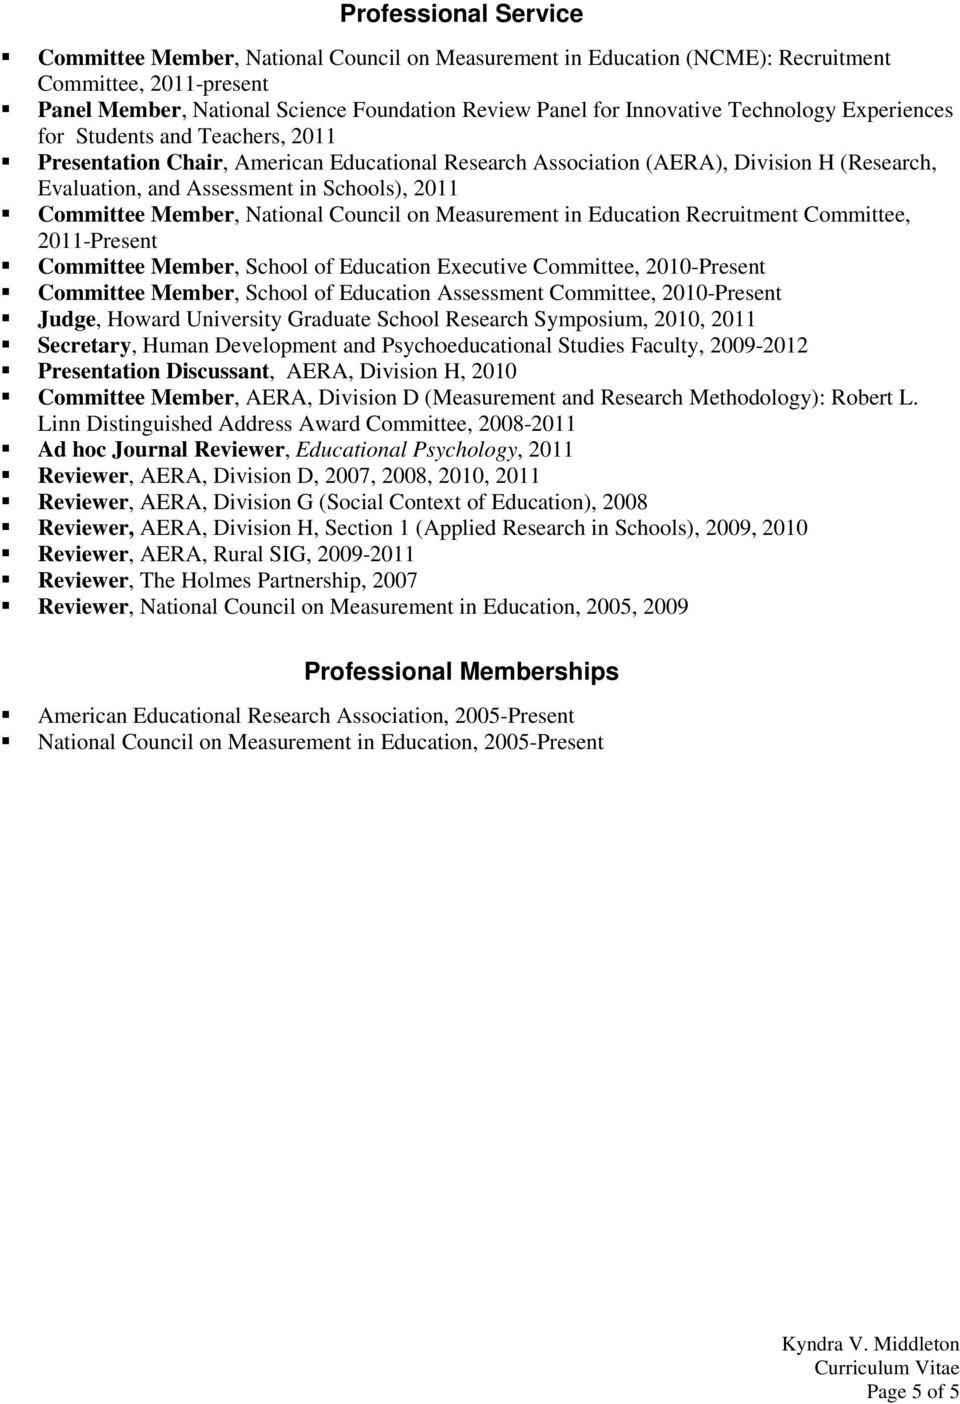 Committee Member, National Council on Measurement in Education Recruitment Committee, 2011-Present Committee Member, School of Education Executive Committee, 2010-Present Committee Member, School of